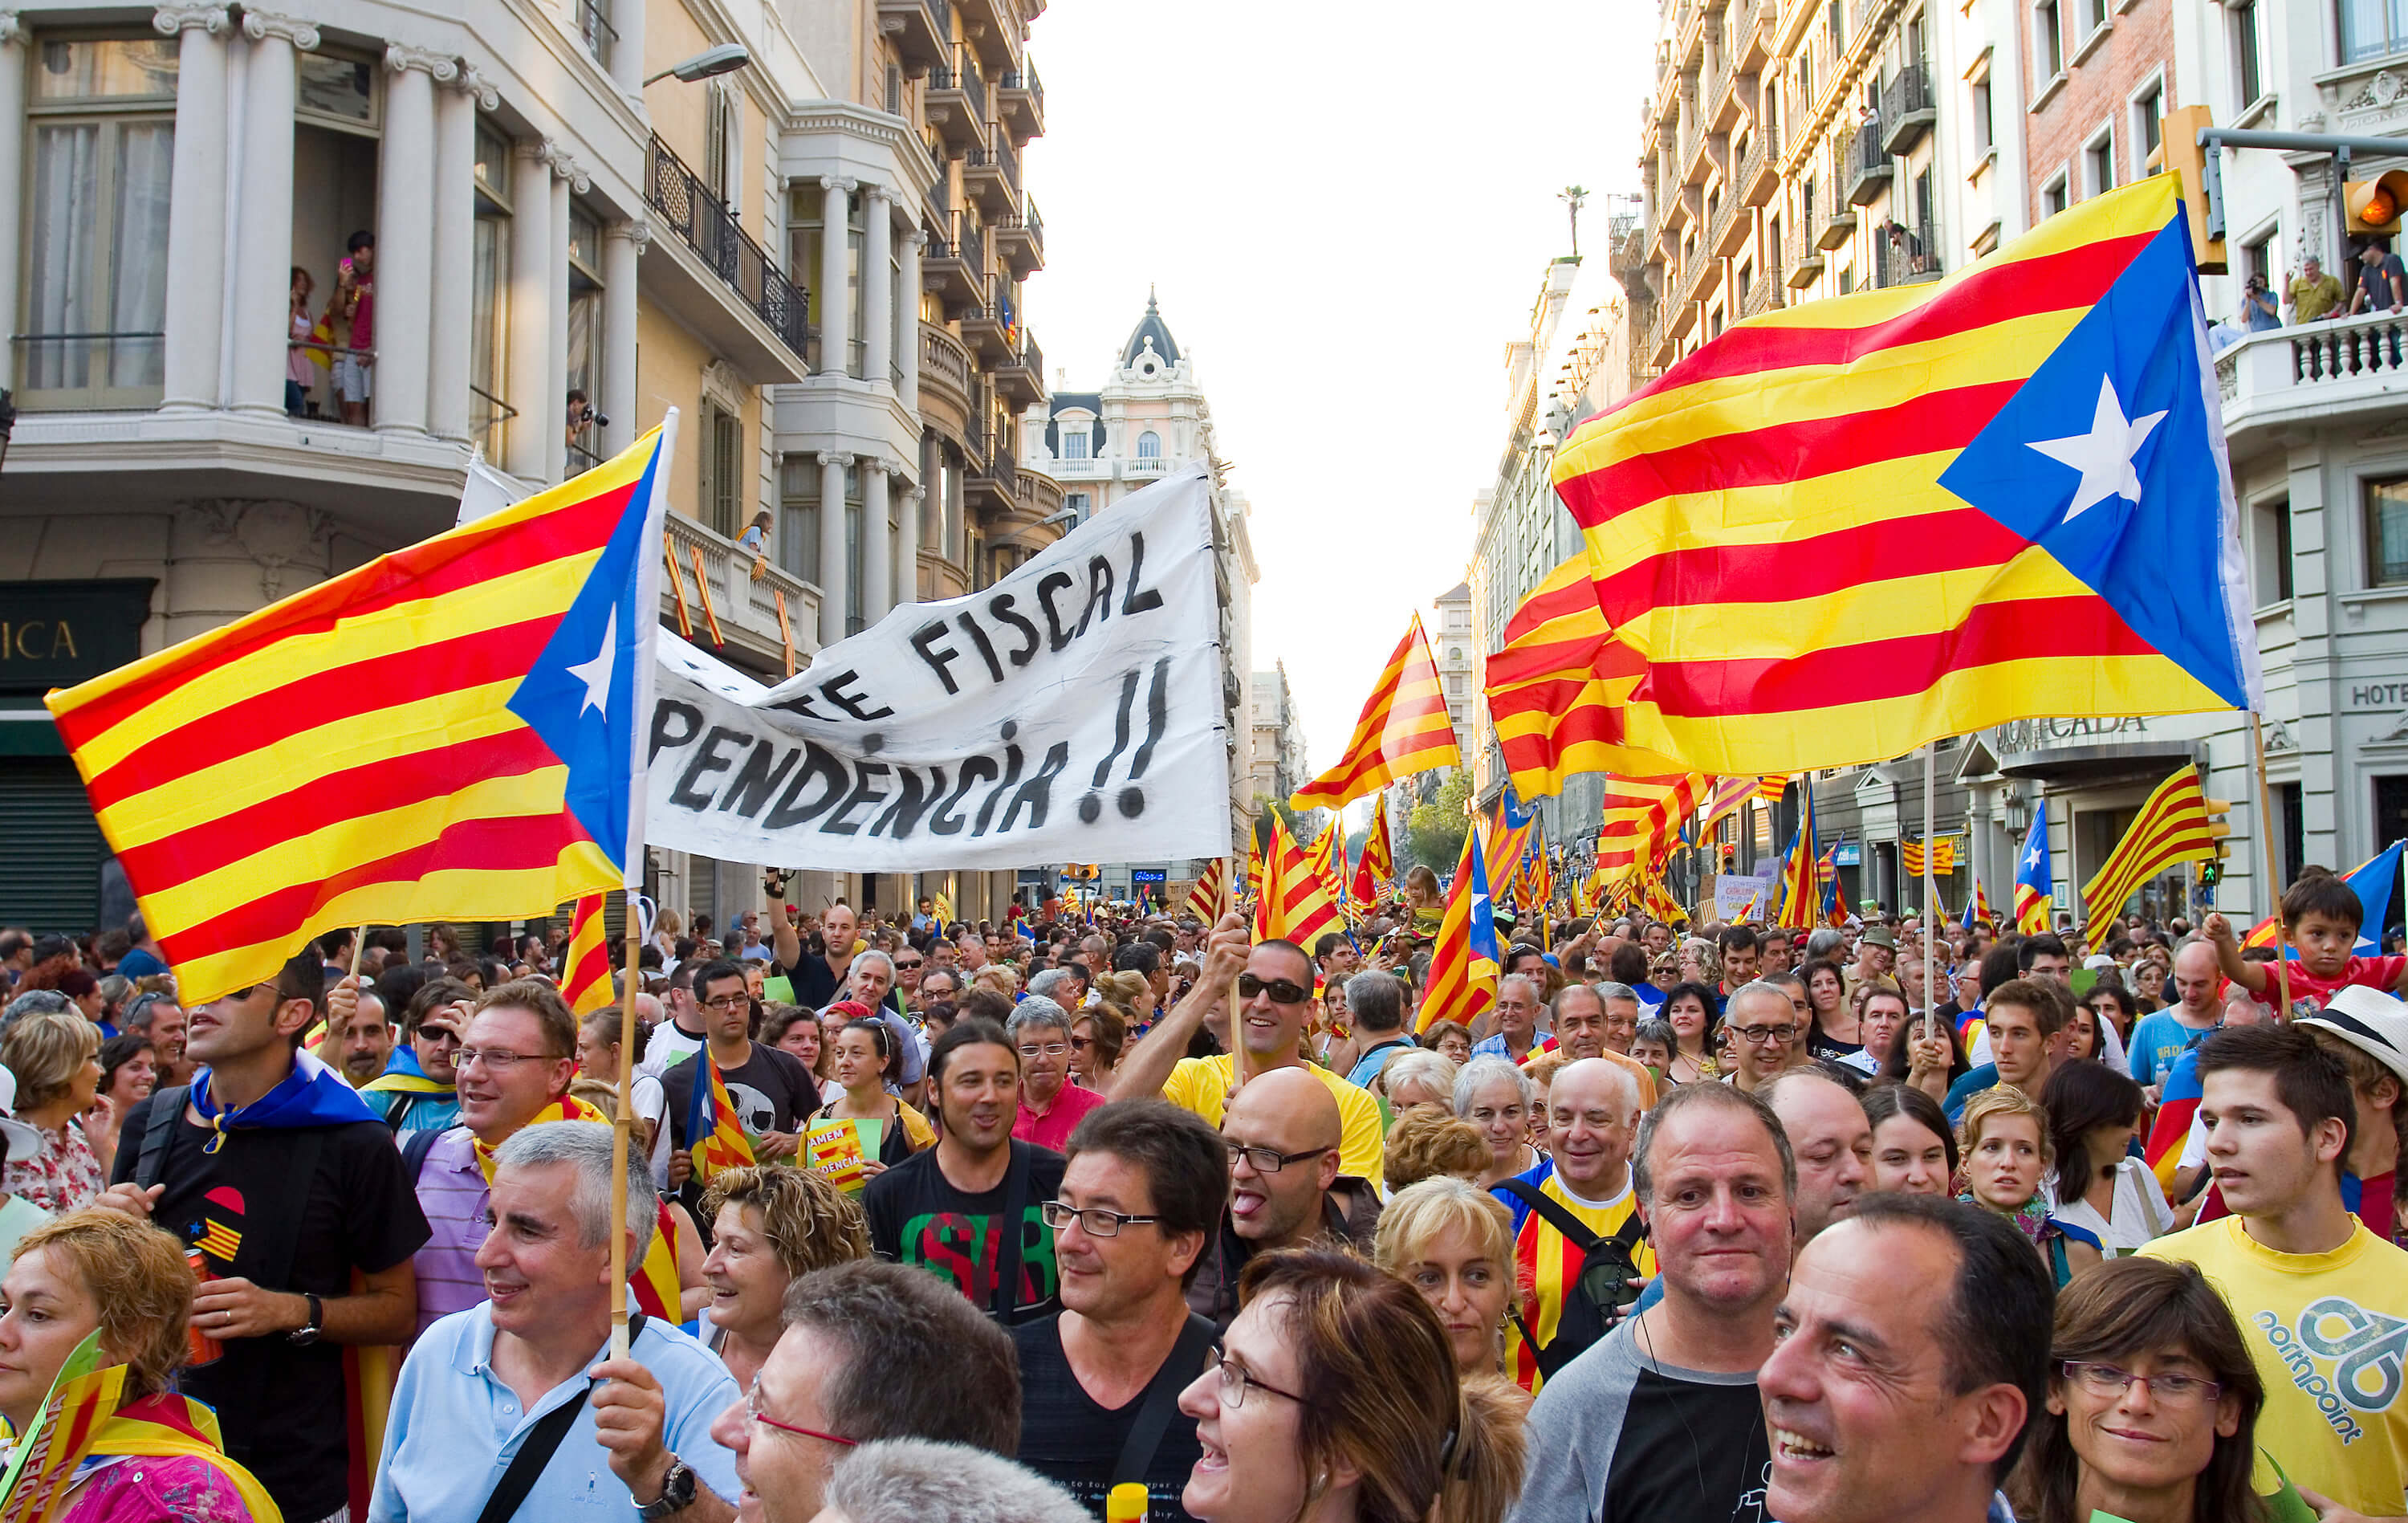 Tips for your first visit to Barcelona - Independence movement in Catalunya